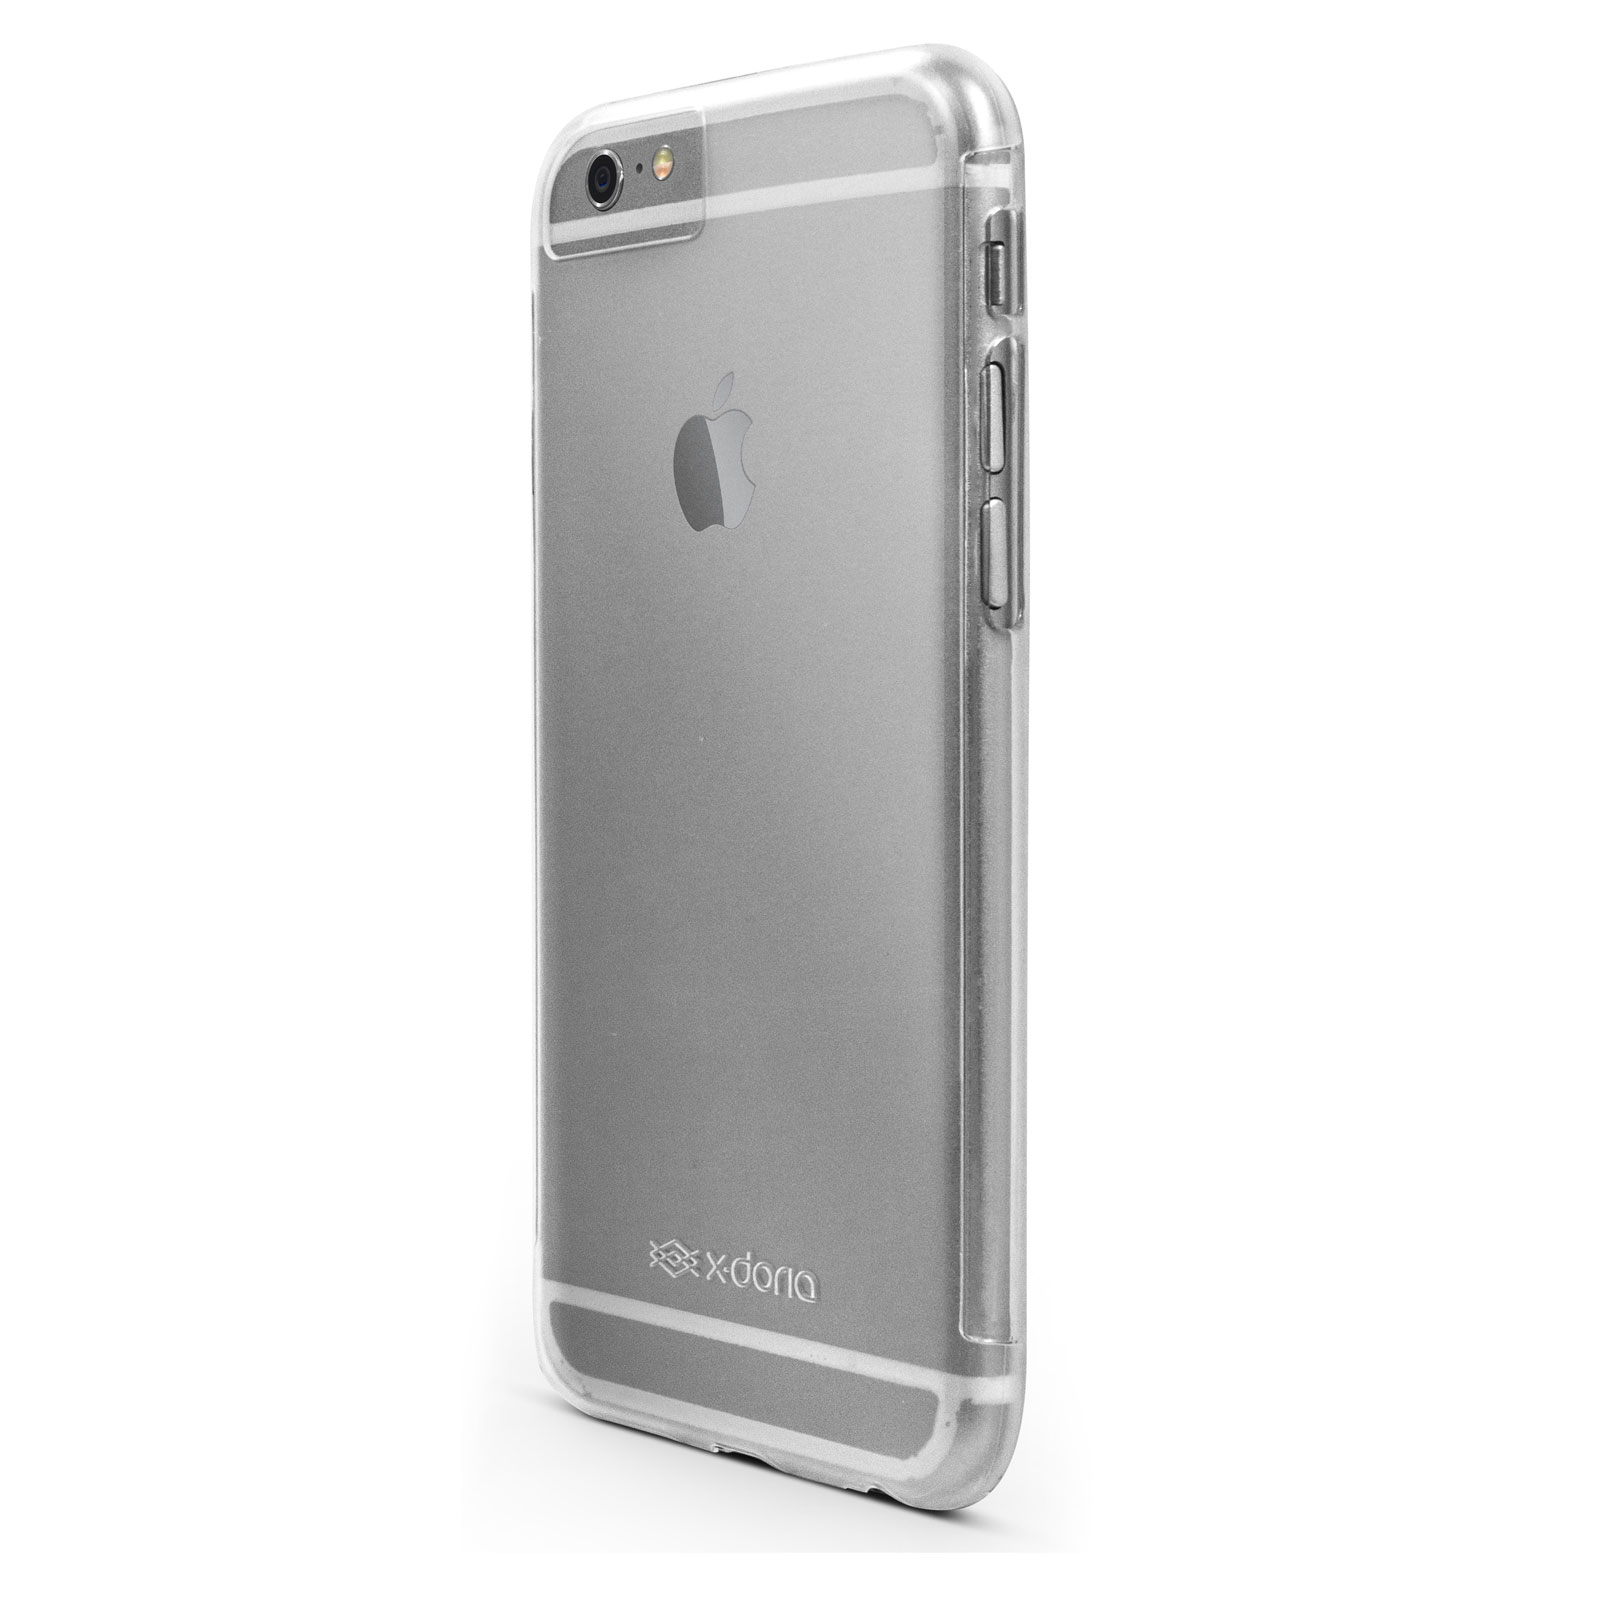 coque iphone 6 gris sidéral transparente